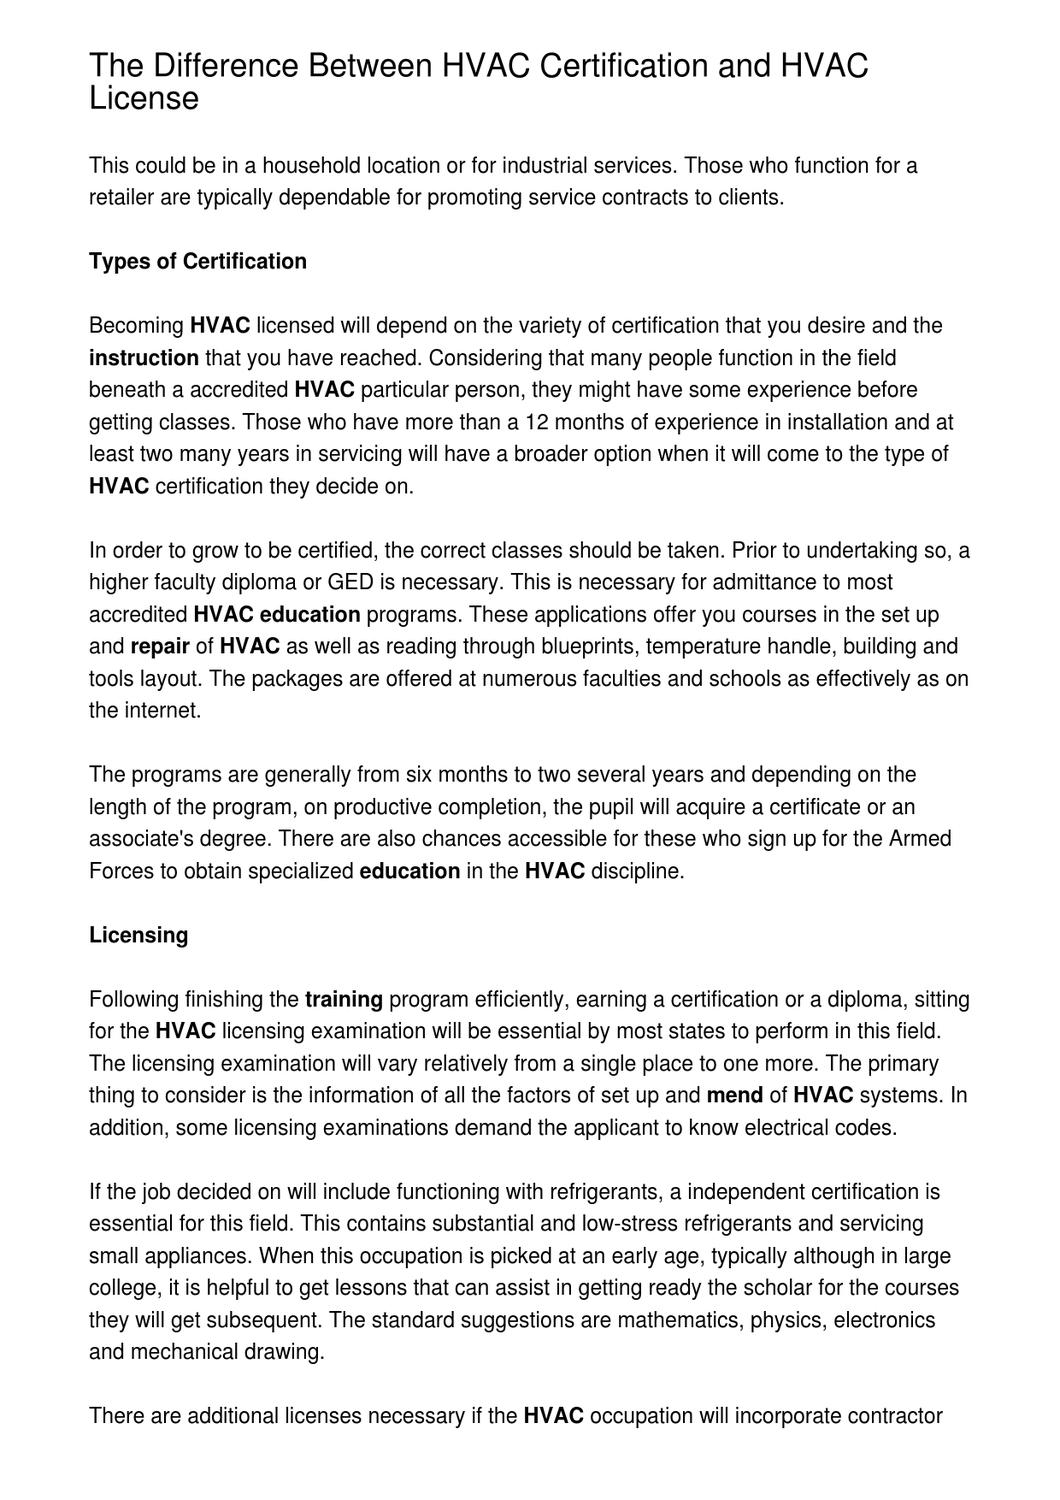 The Difference Between Hvac Certification And Hvac License By